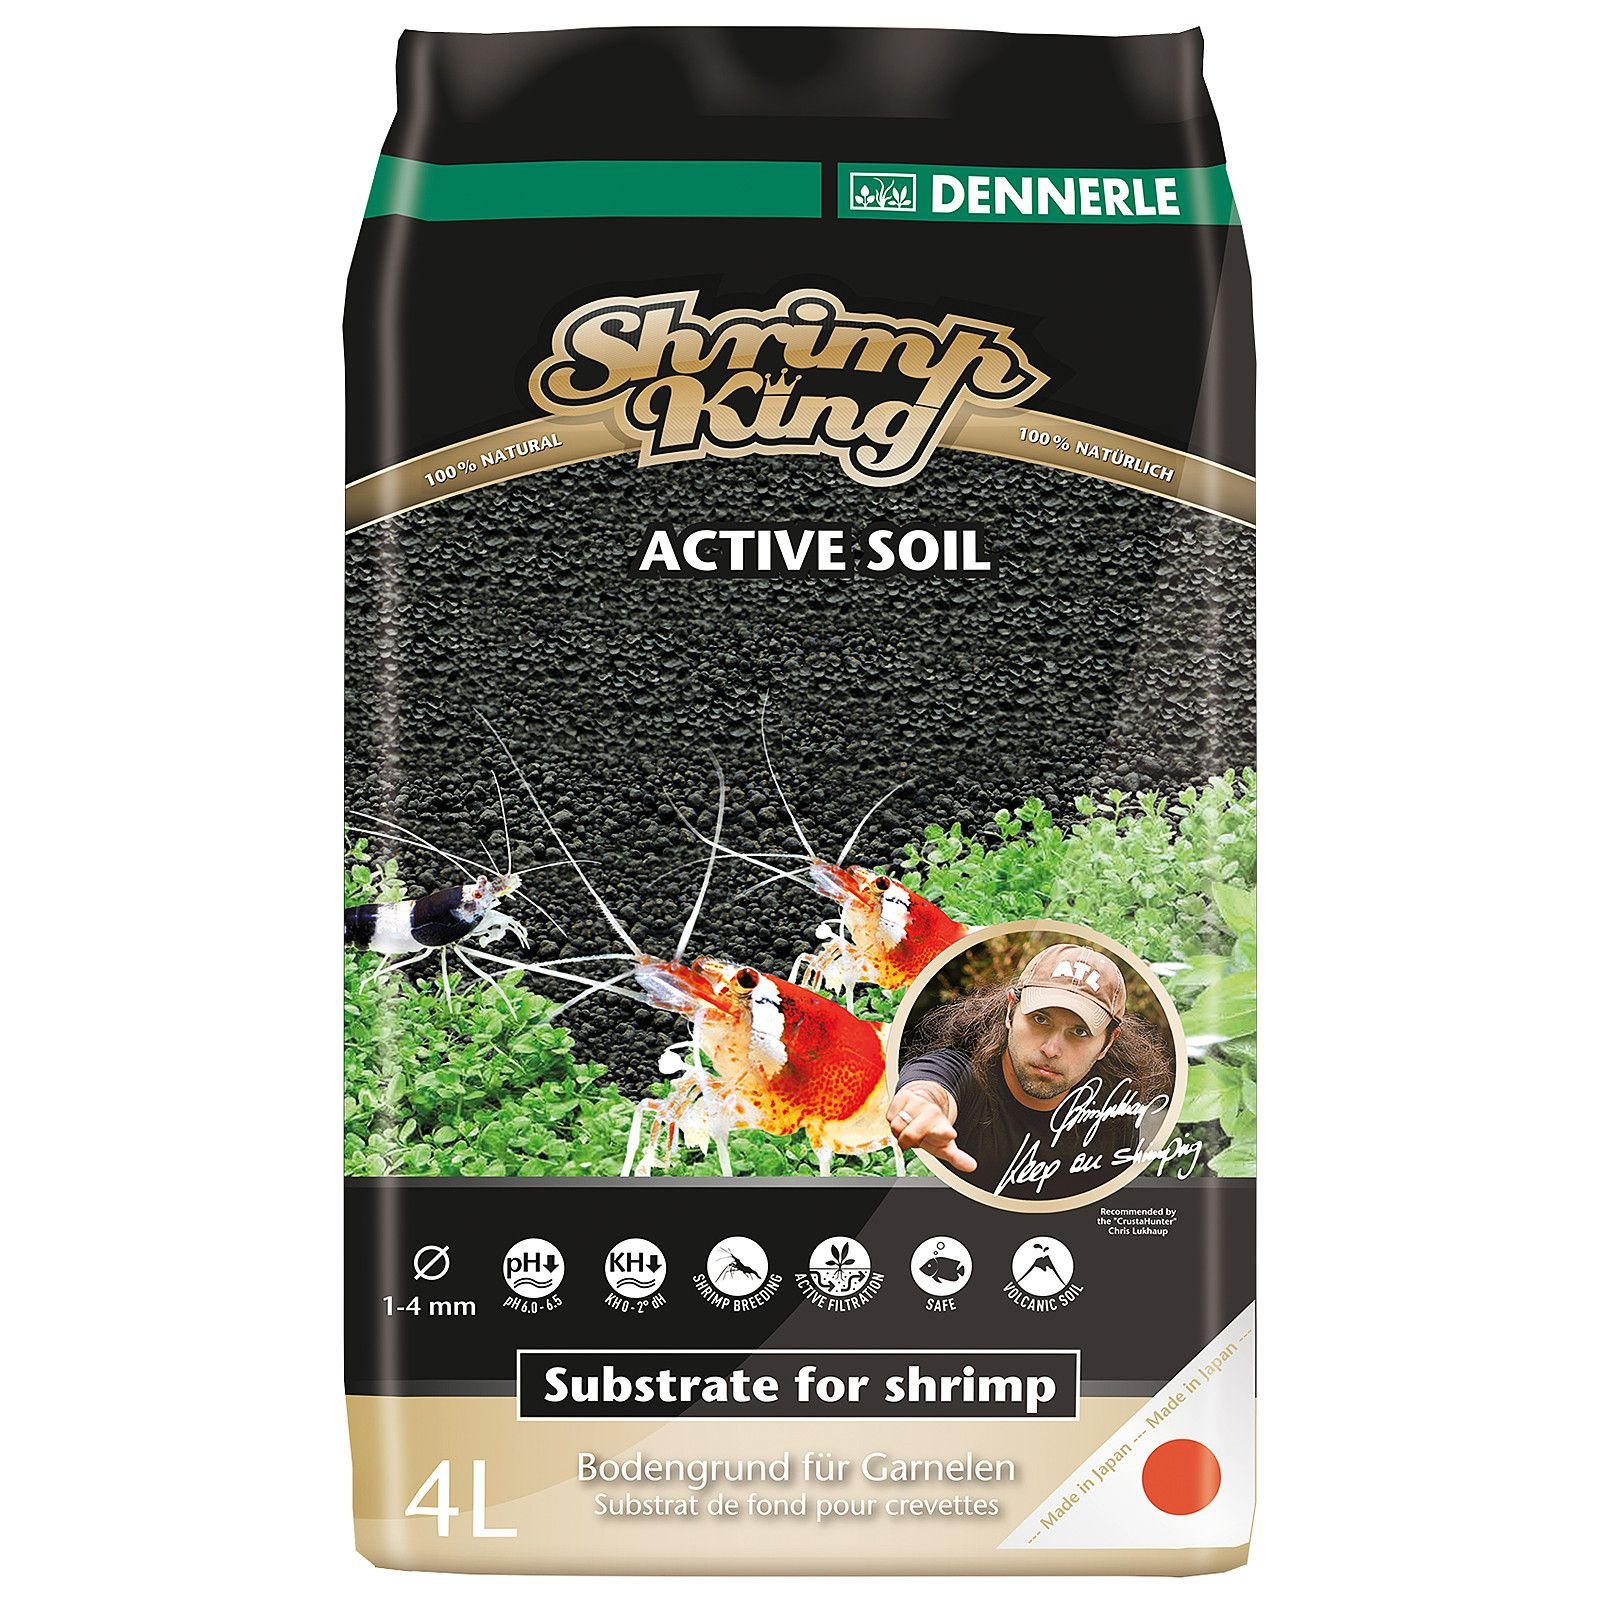 Dennerle - Shrimp King - Active Soil - 8 l